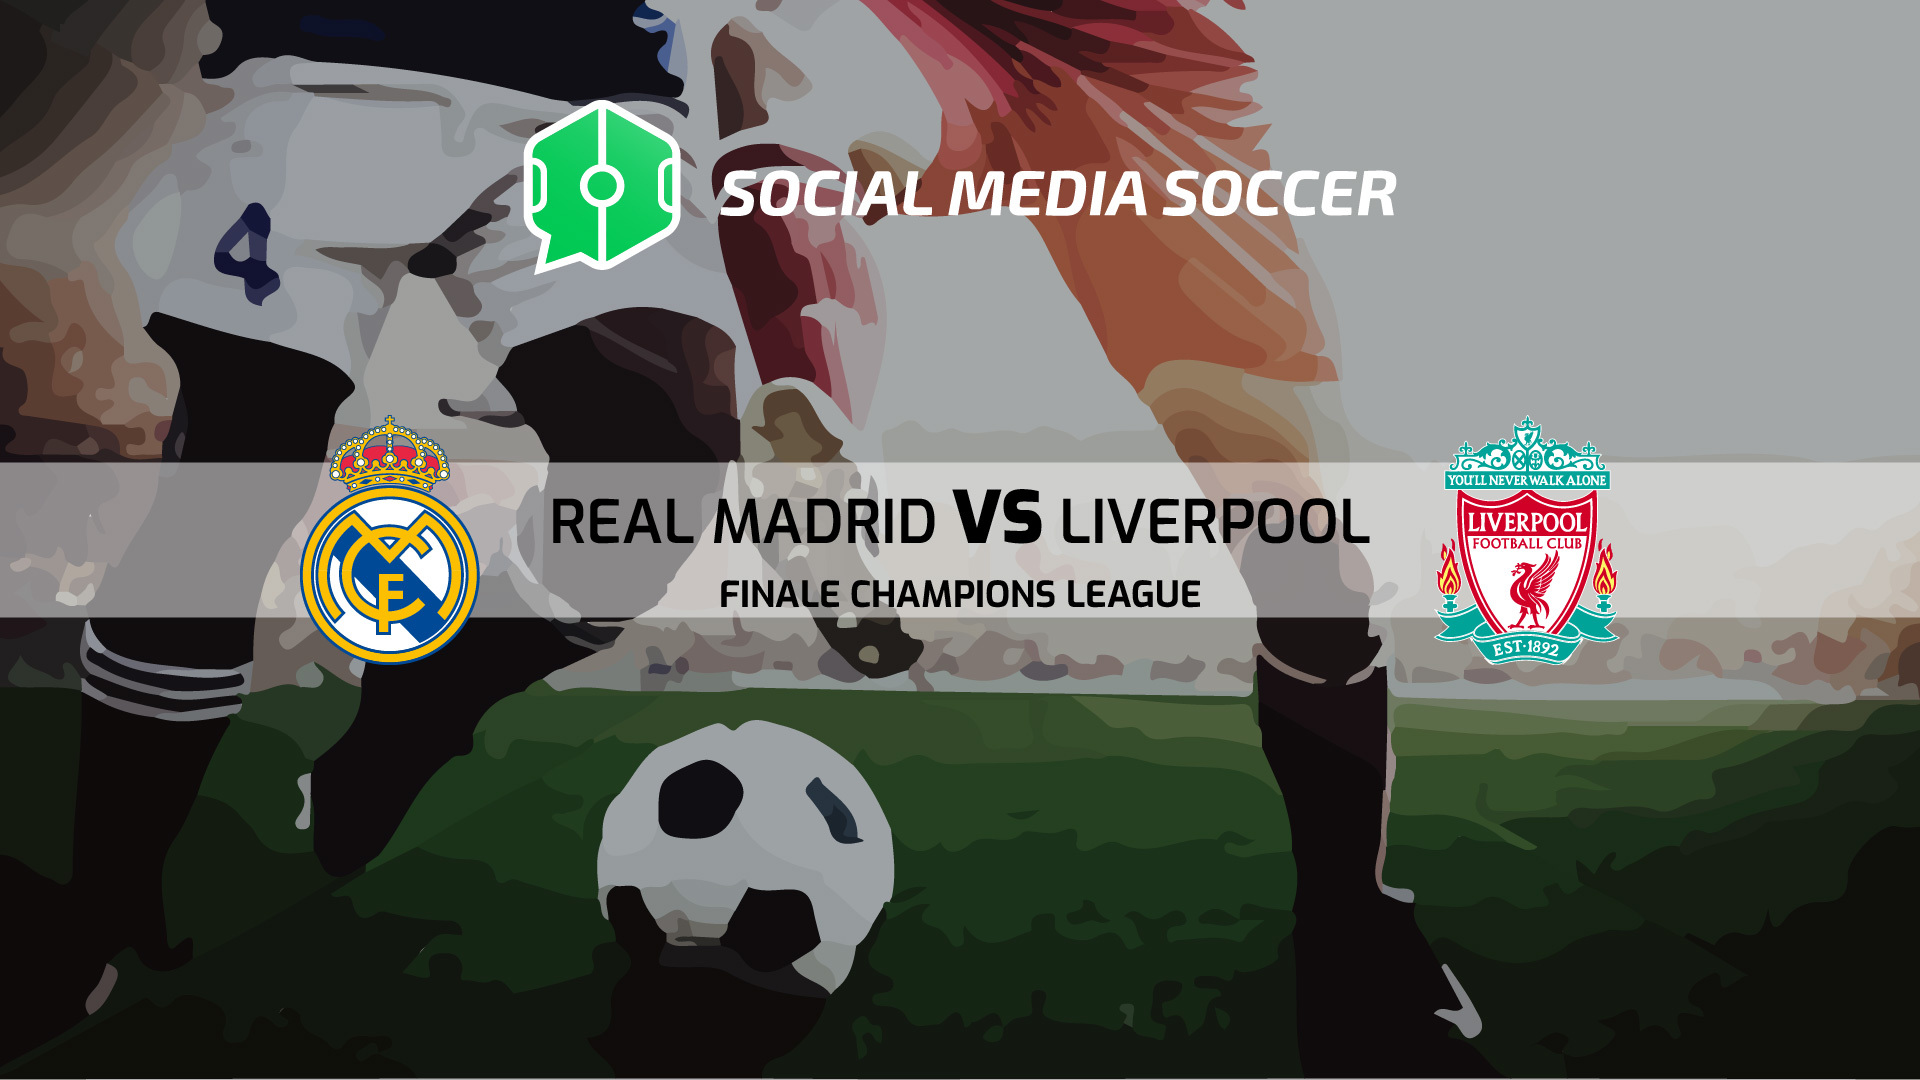 Champions League Finale Social Real Madrid-Liverpool